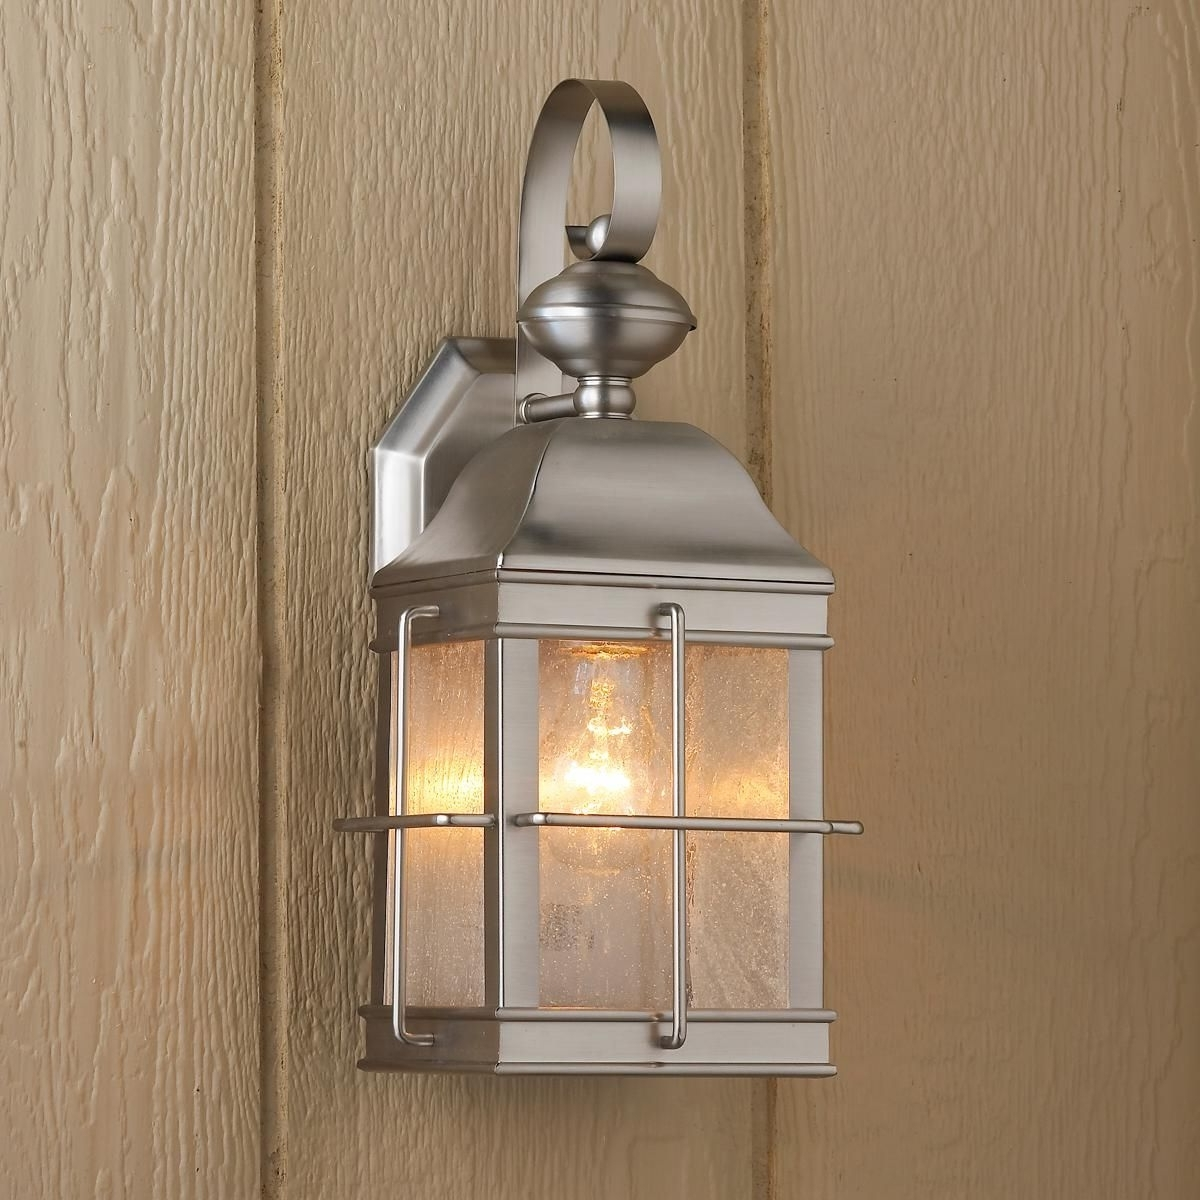 Nautical Lanterns Regarding Preferred Outdoor Nautical Lanterns (Gallery 5 of 20)